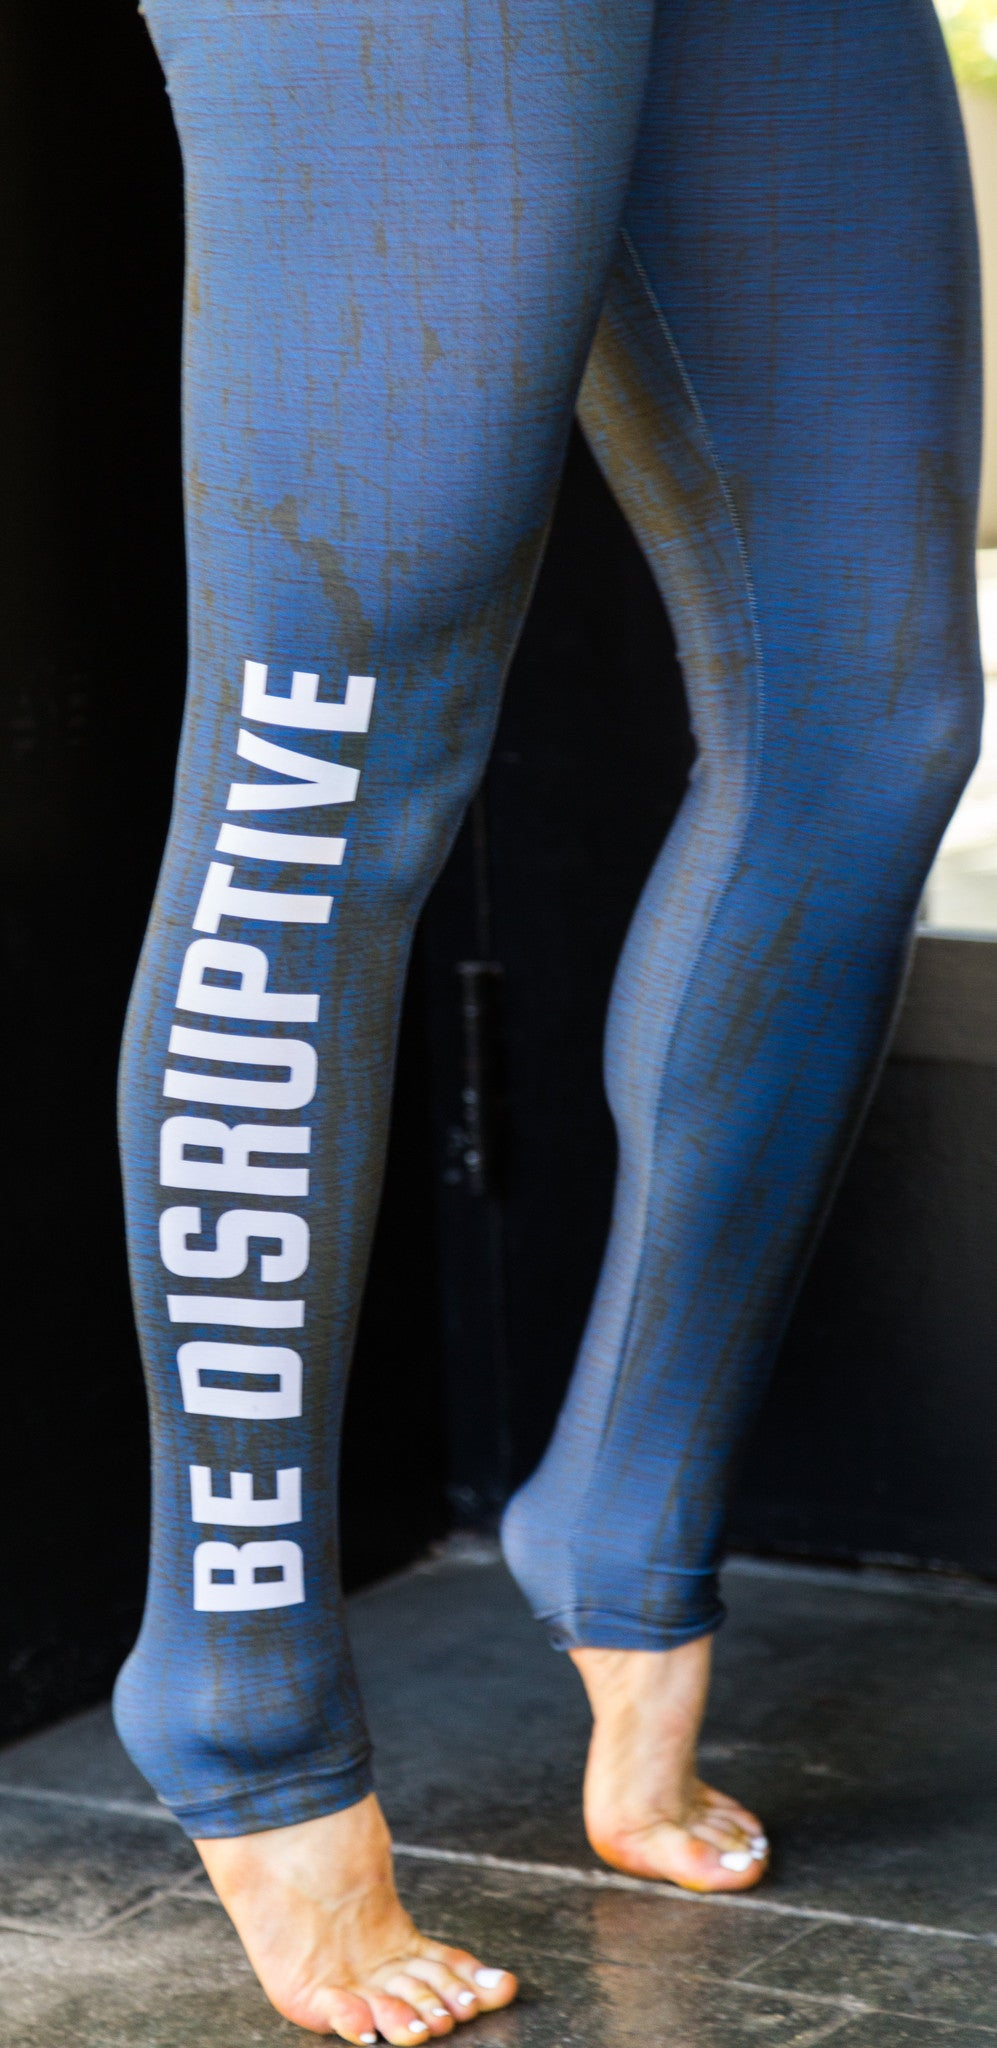 be-disruptive-ready-wear-performance-leggings